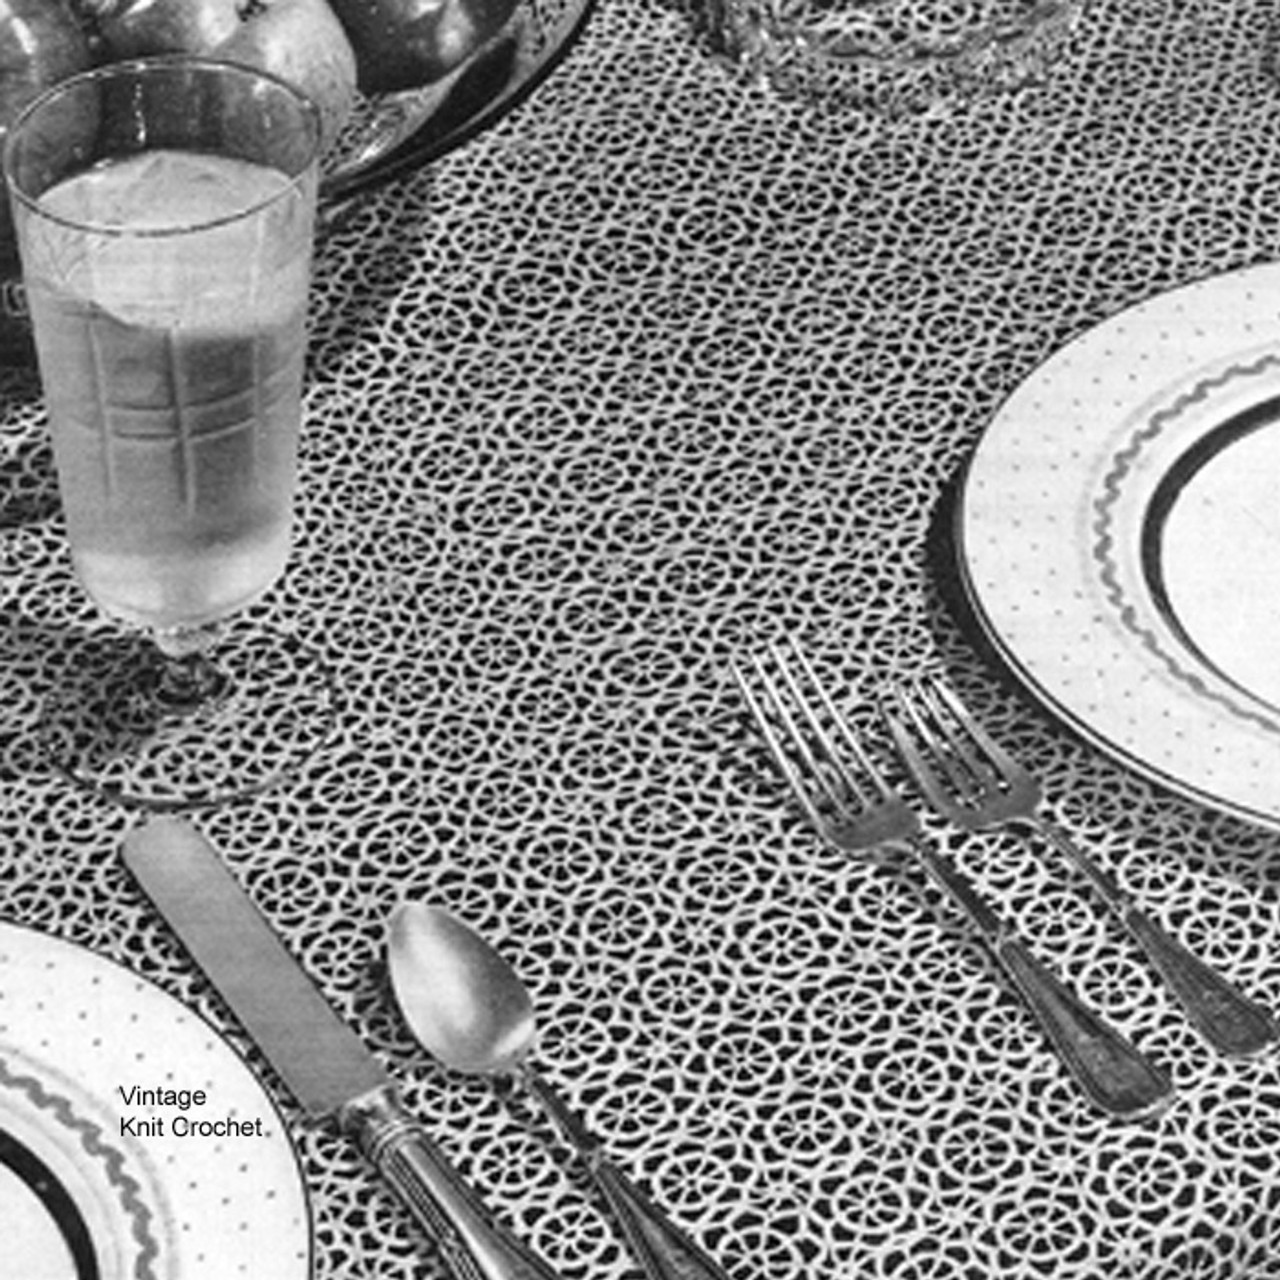 Vintage Mini Crocheted medallion pattern for tablecloth that measures 56 x 72 inches